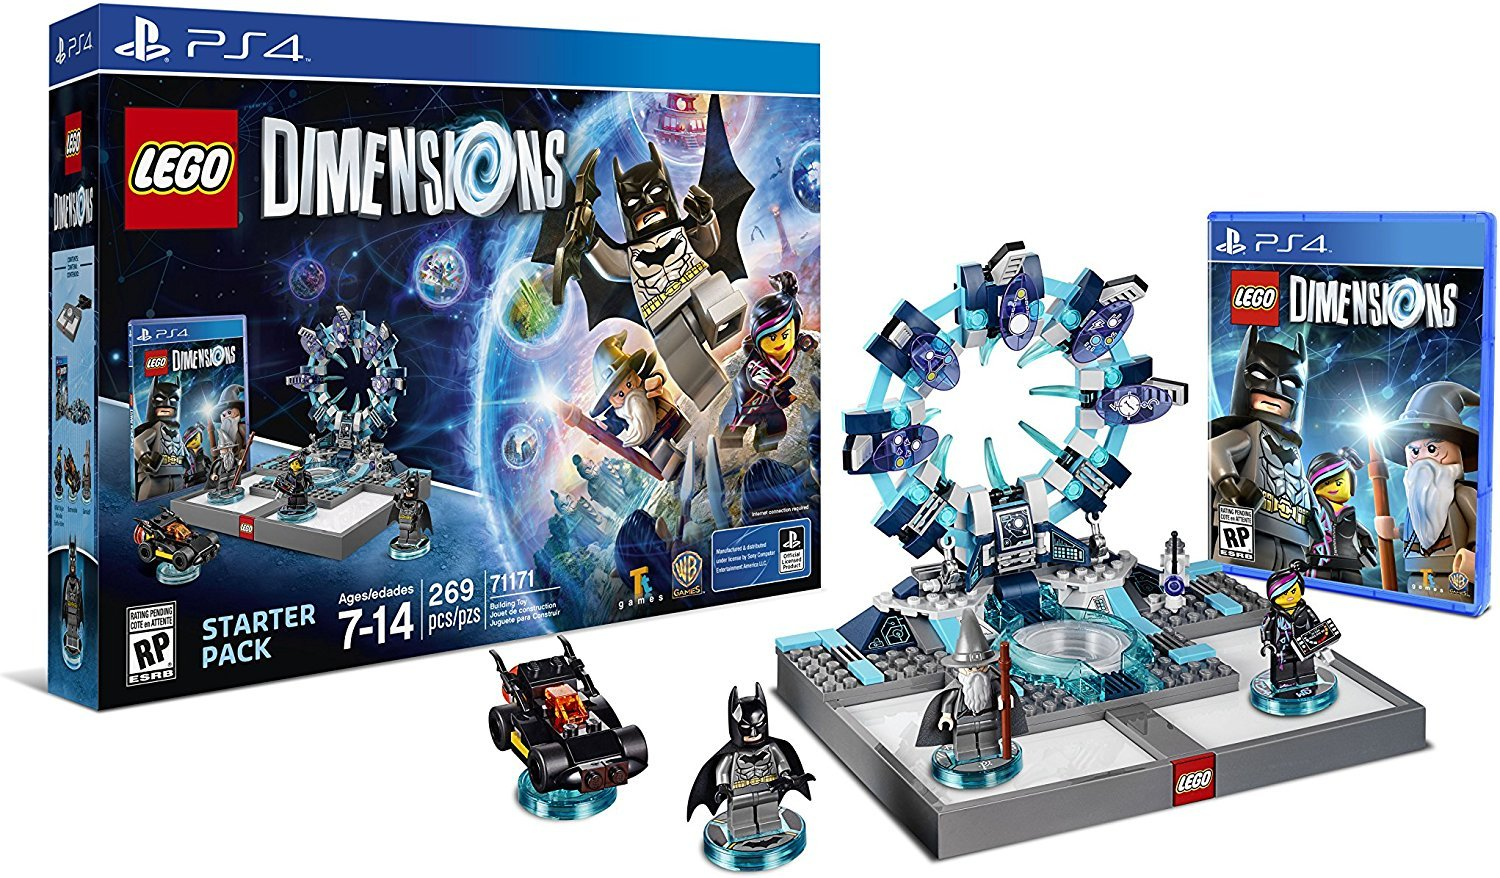 Lego Dimensions Starter Pack for Playstation 4 / PS4 or PS4 PRO Console